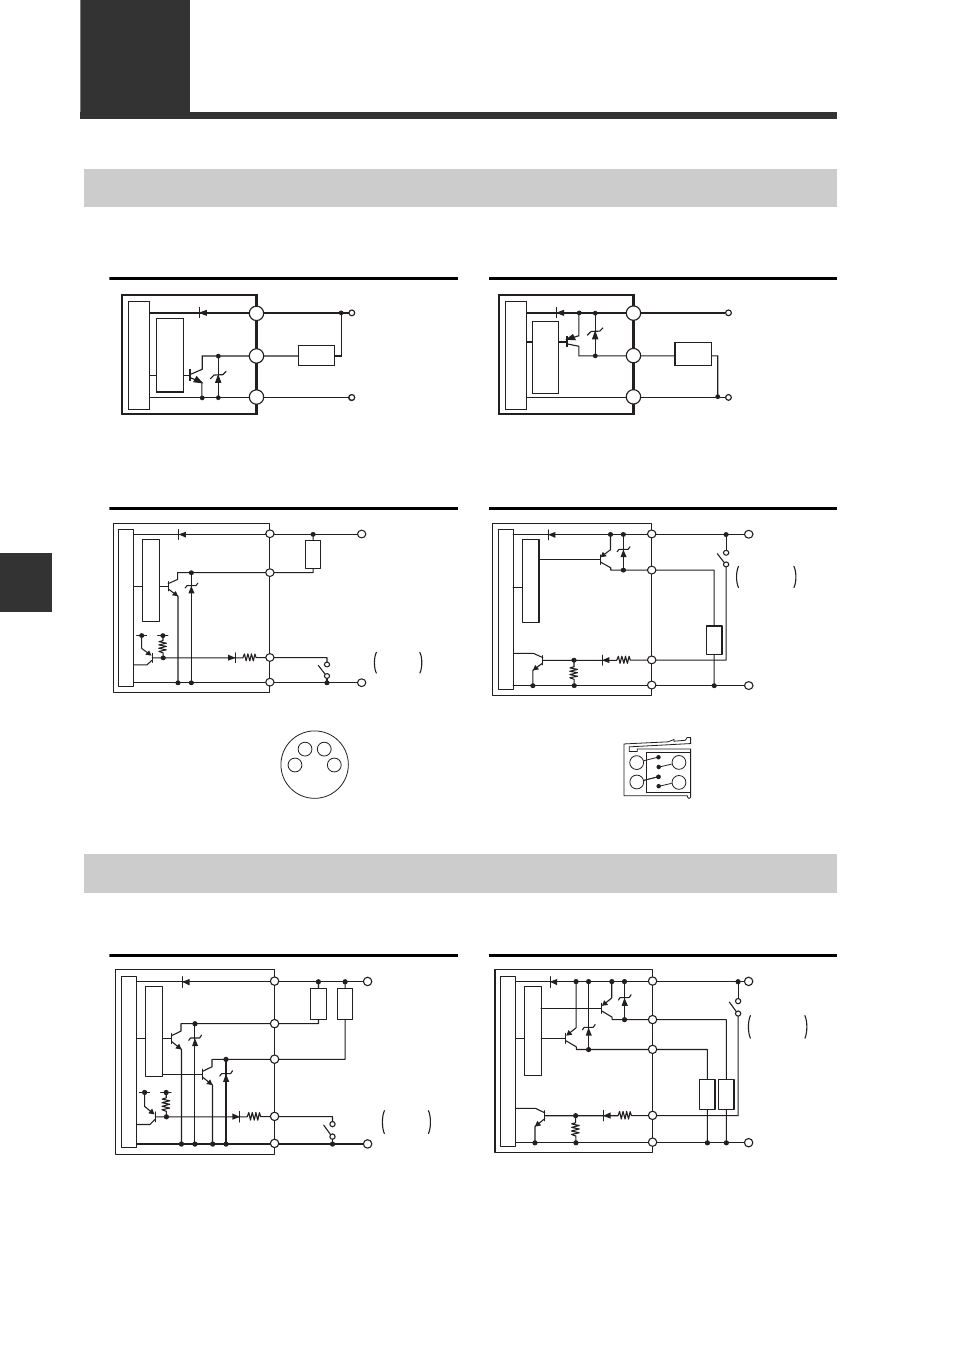 Keyence Wiring Diagram - Wiring Diagrams